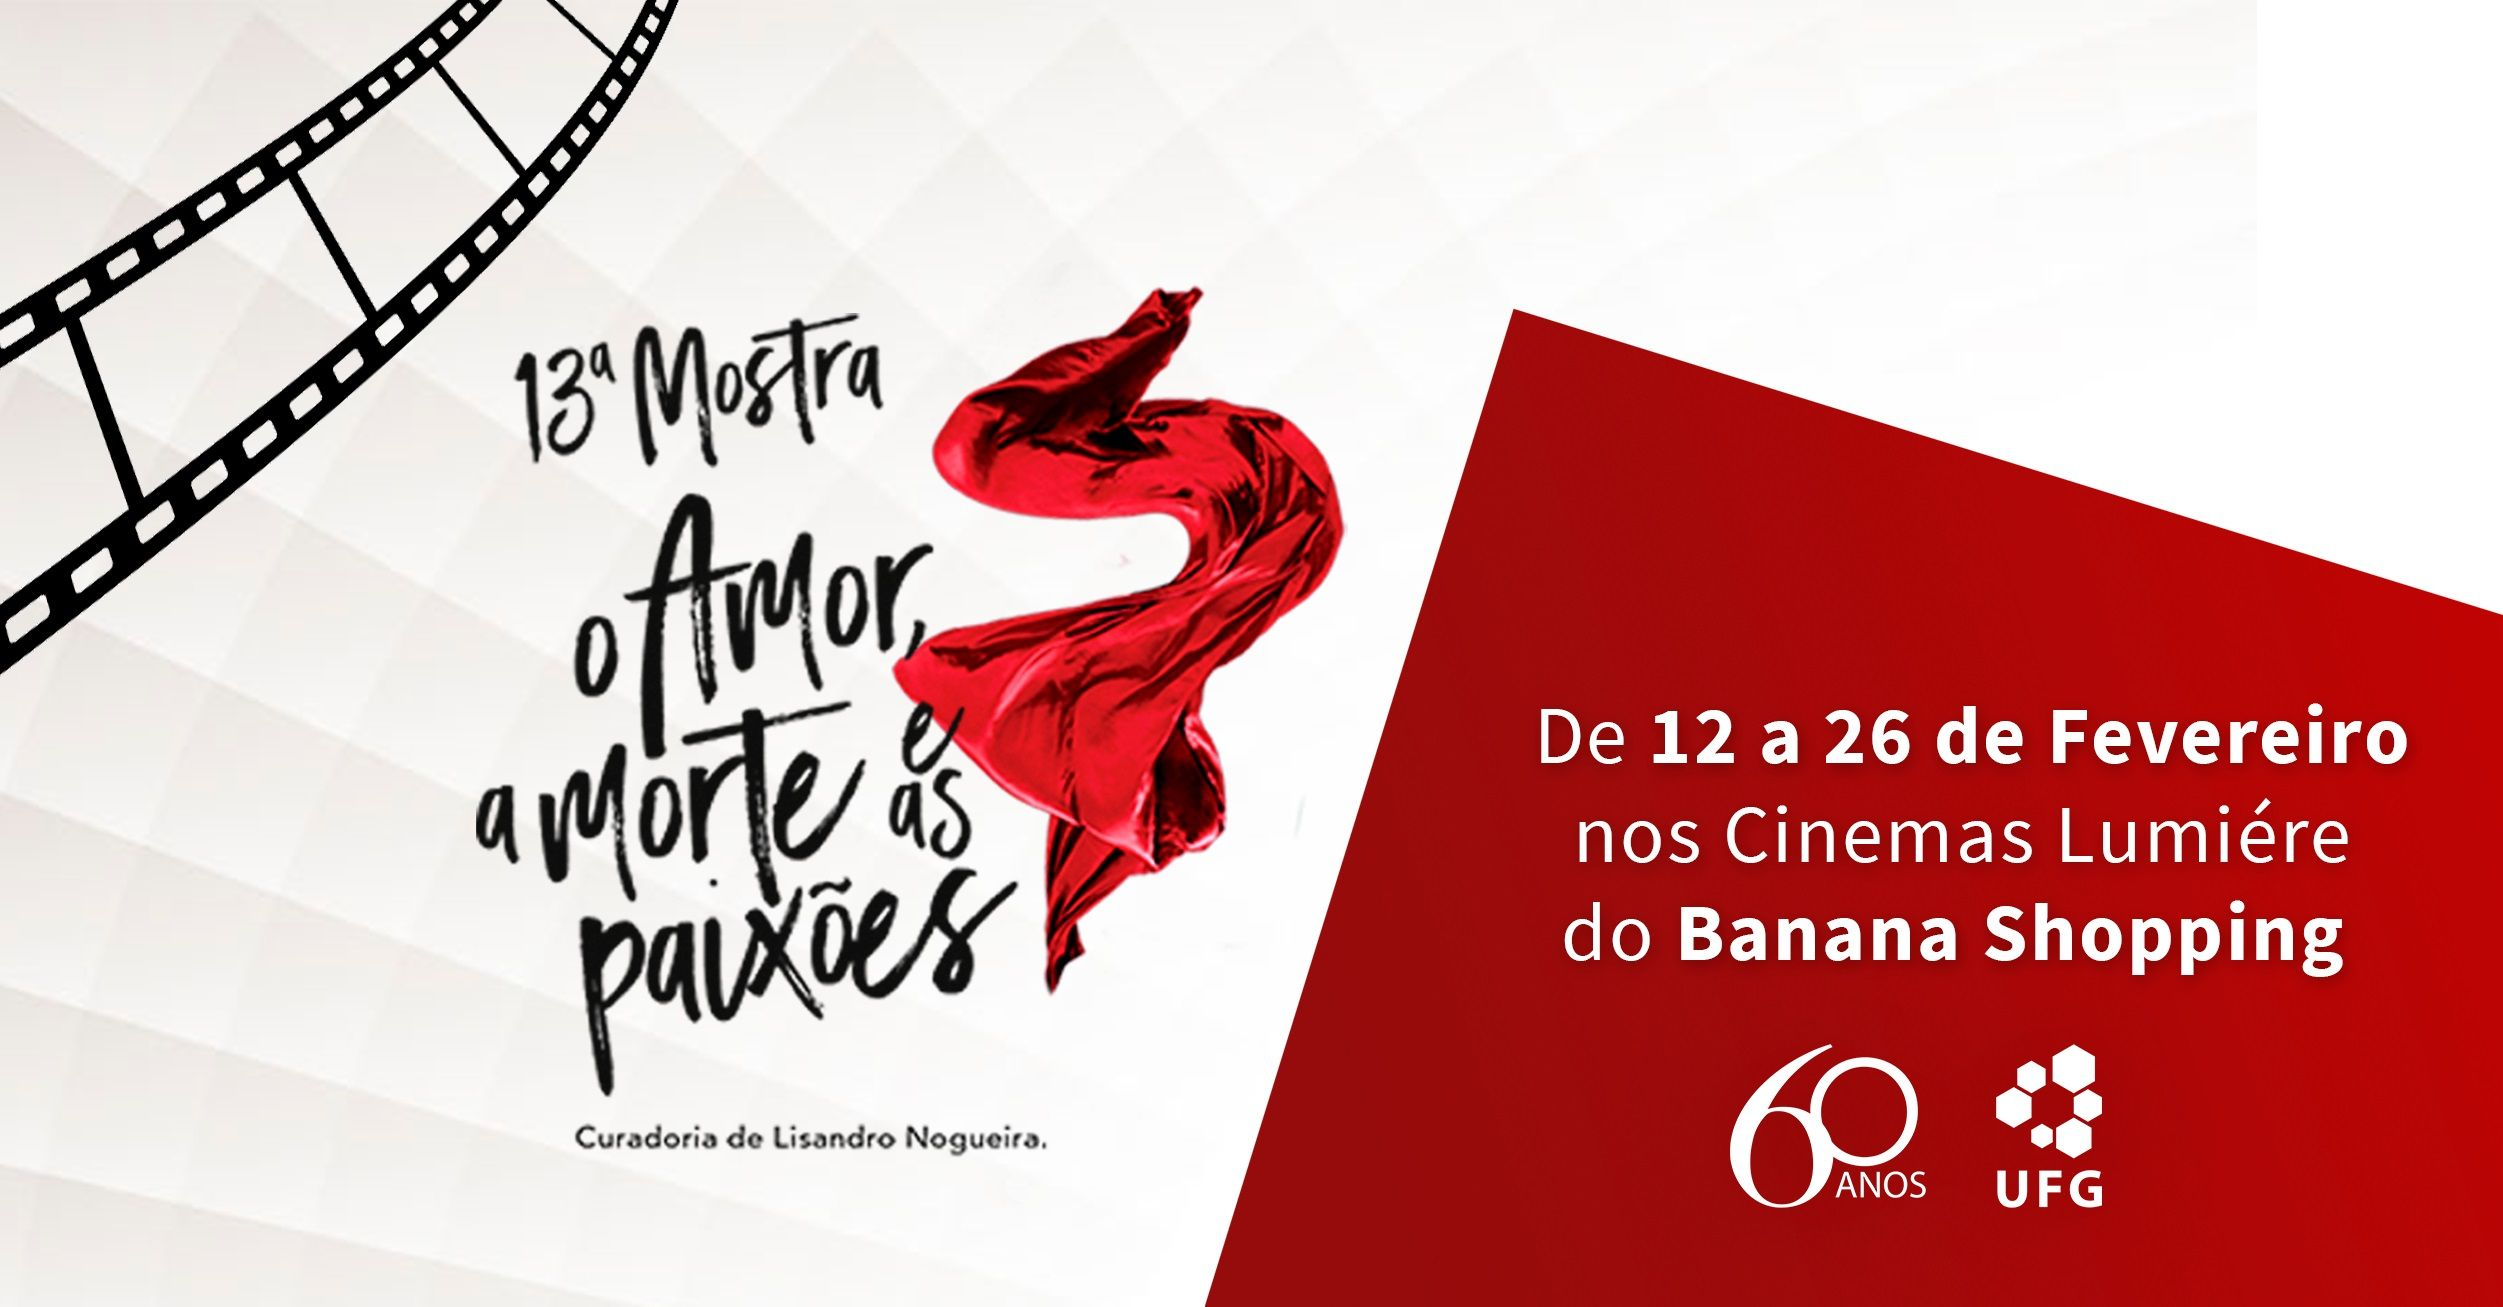 13a_Mostra_O_Amor_A_Morte_E_As_Paixões 1